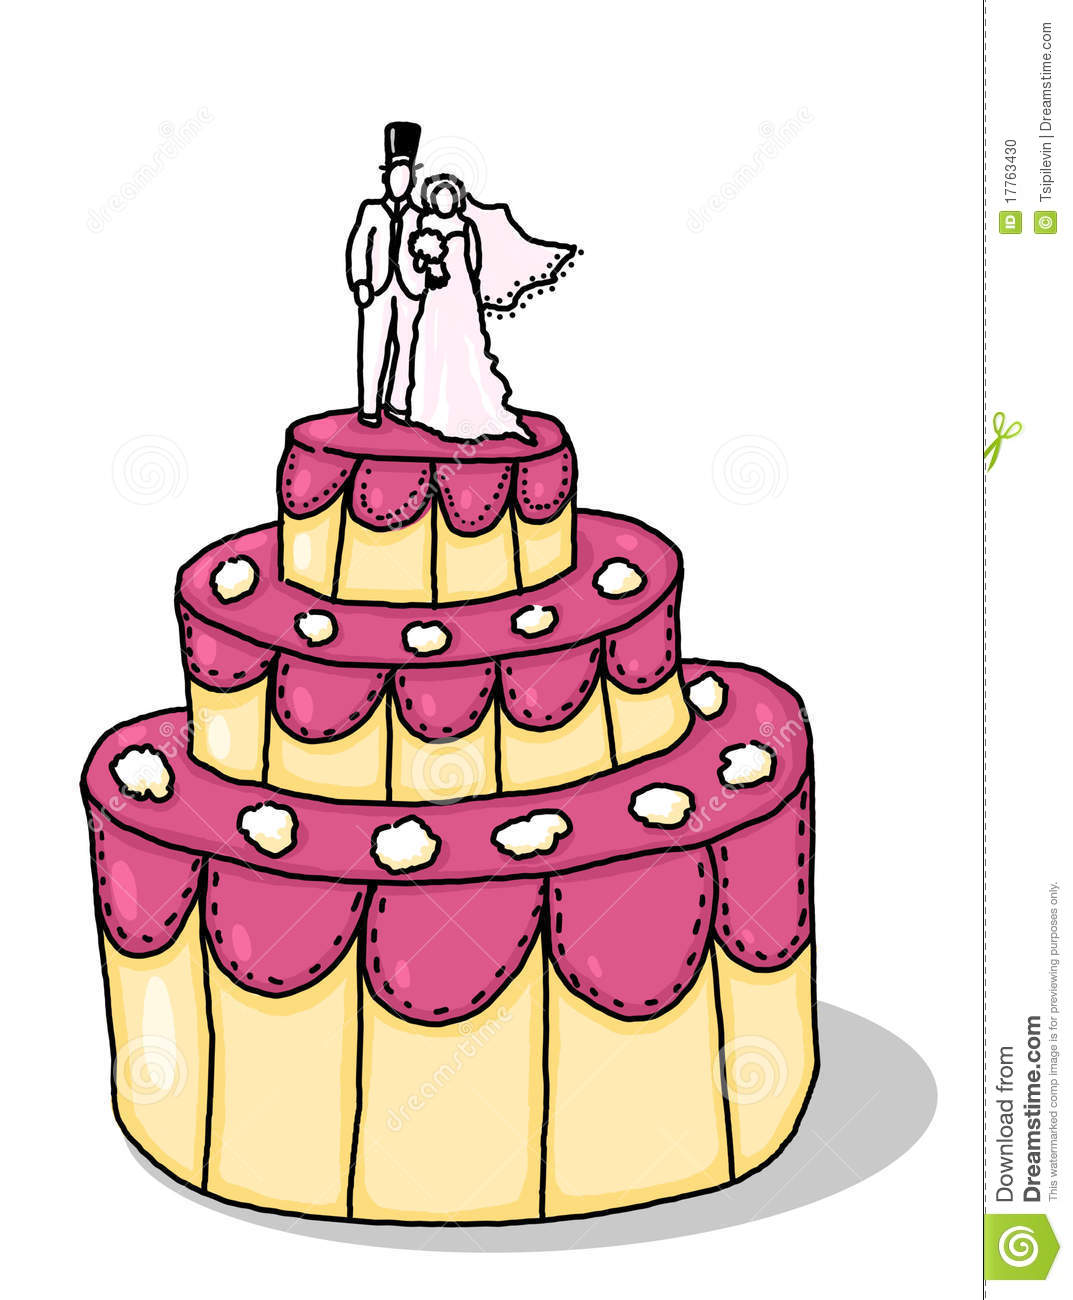 Wedding Cake Illustration Stock Illustration Image Of Illustration